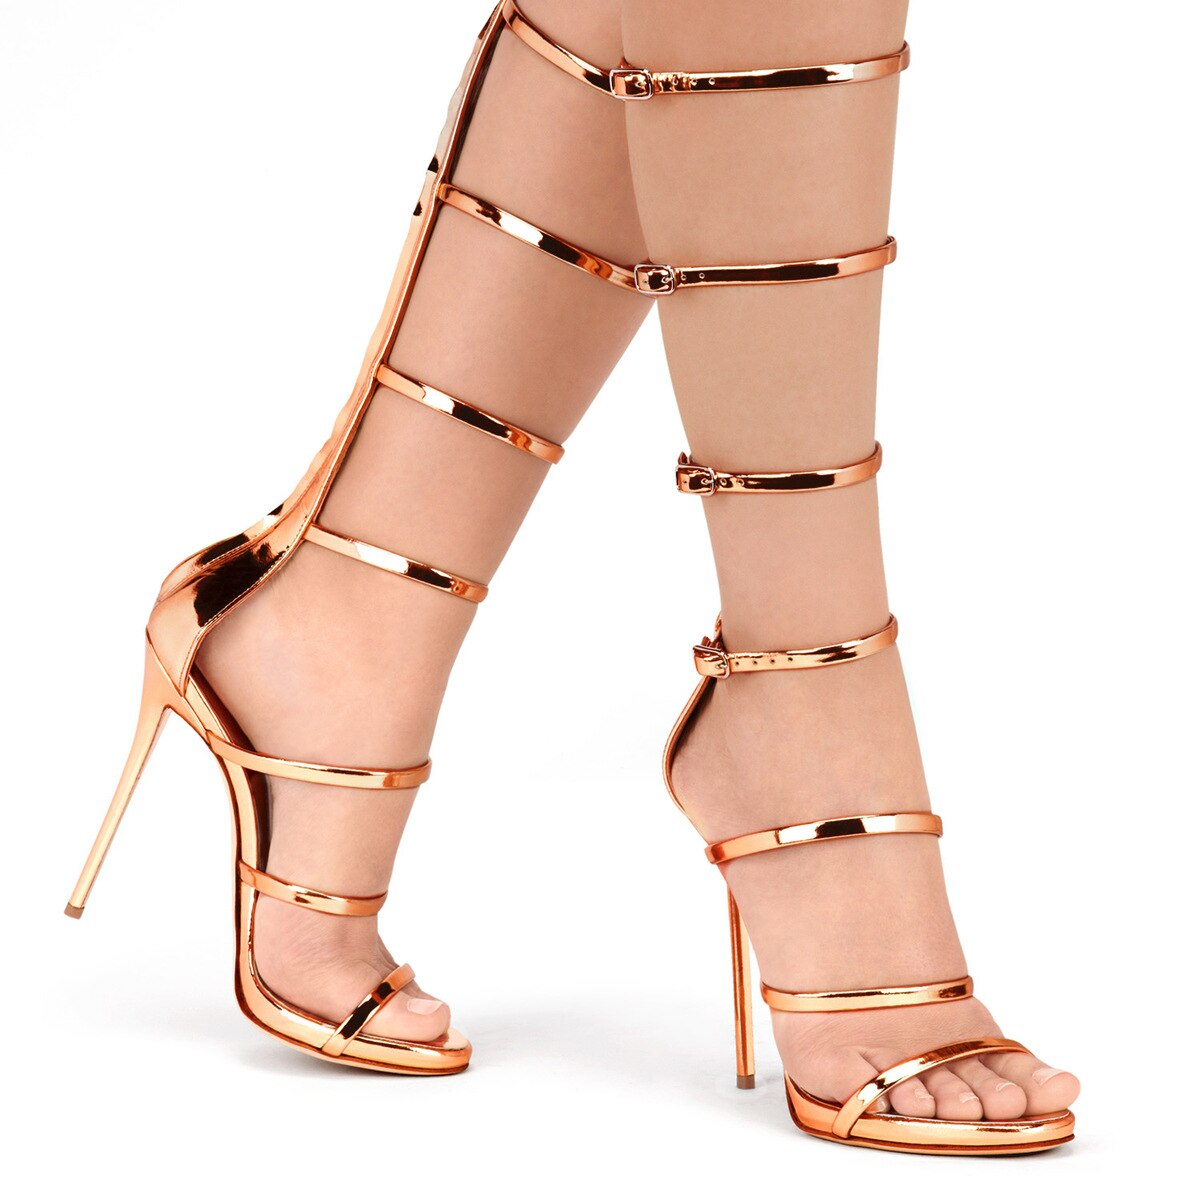 2021 Summer High Heels Sandals Roman Buckle Gold Patent Leather Knee High Gladiator Sandals Boots Customized Women's Shoes Mujer